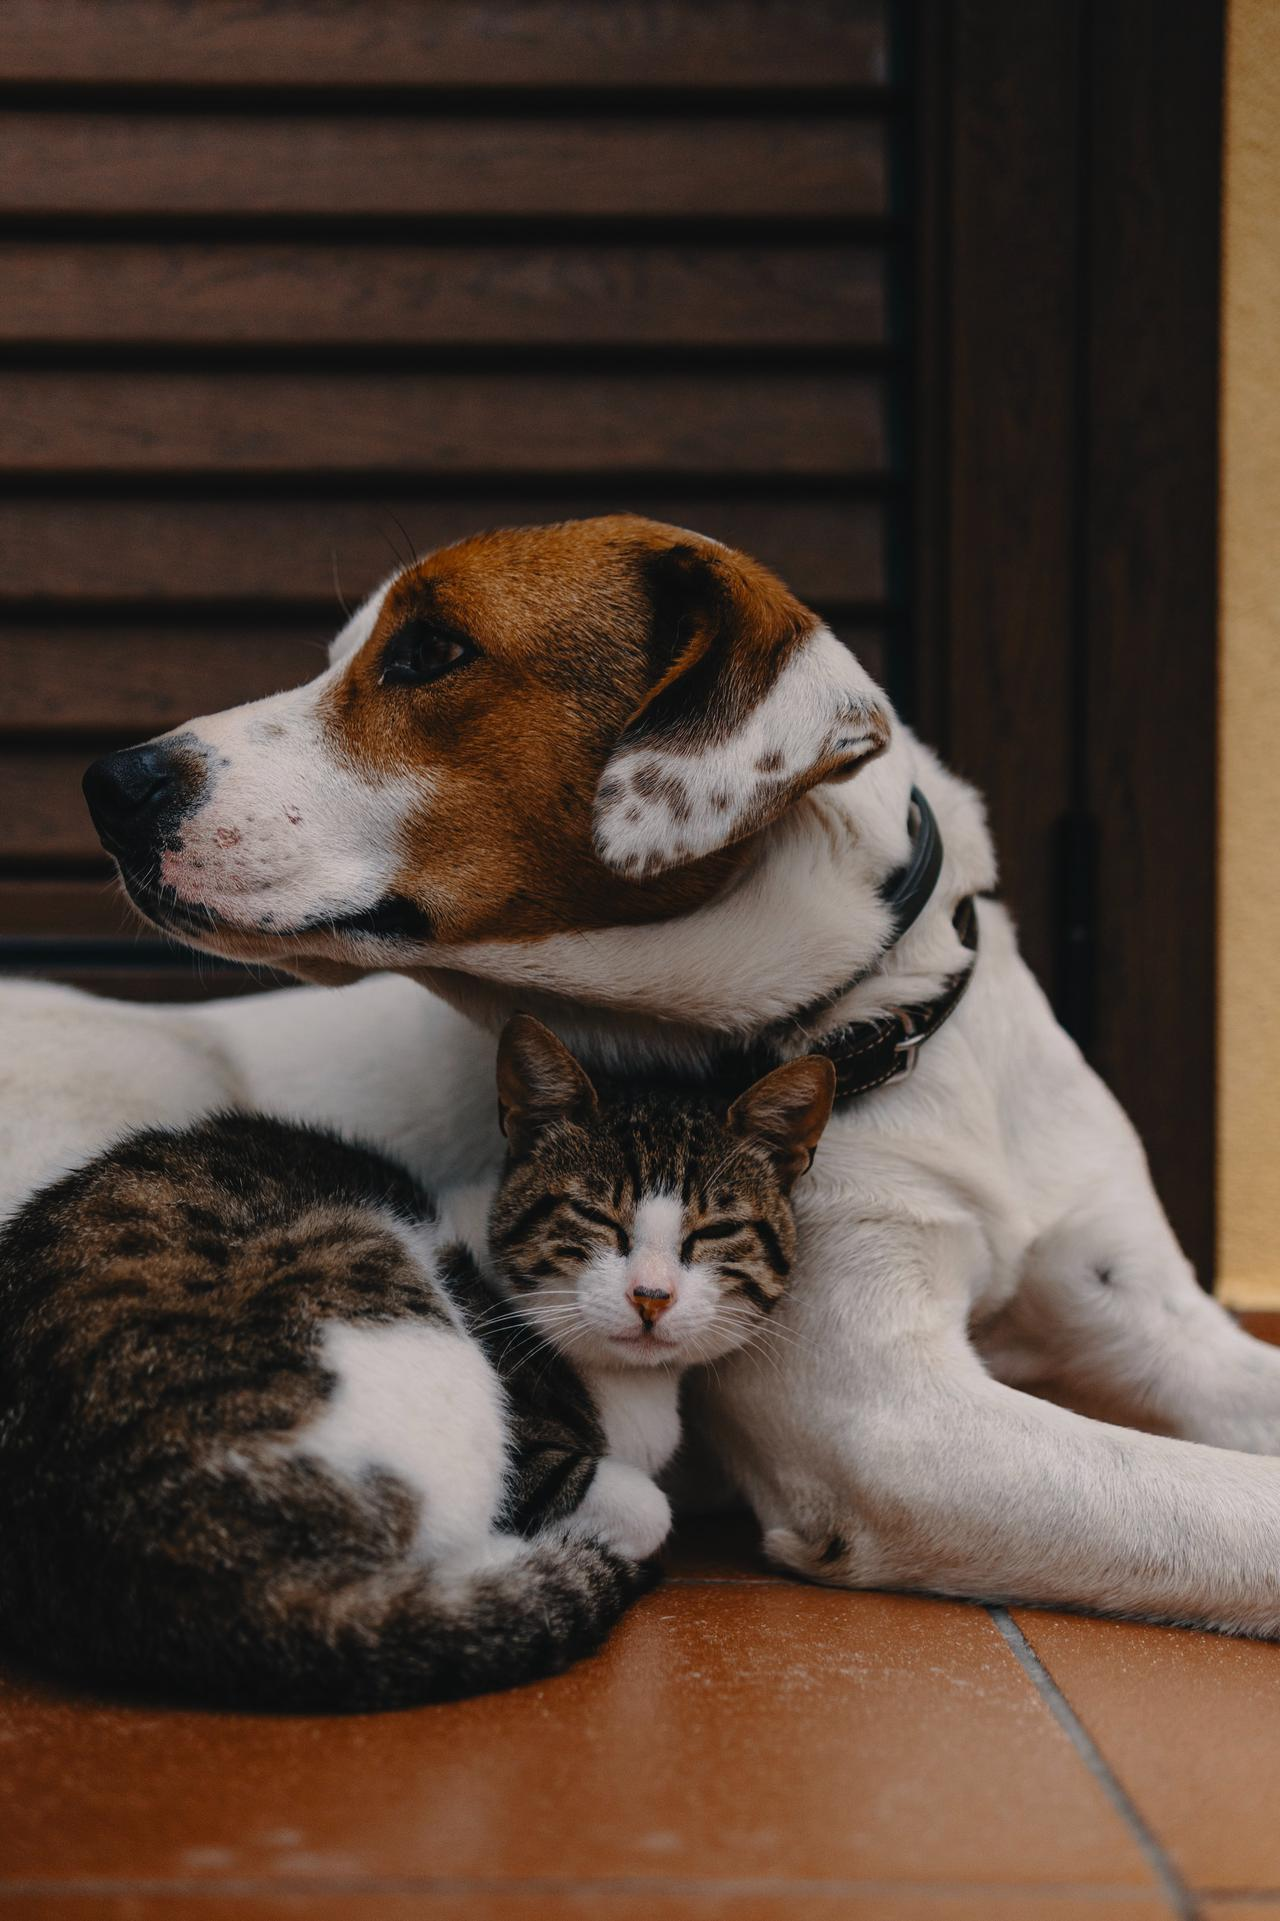 This is an image of spayed and neutered pets.